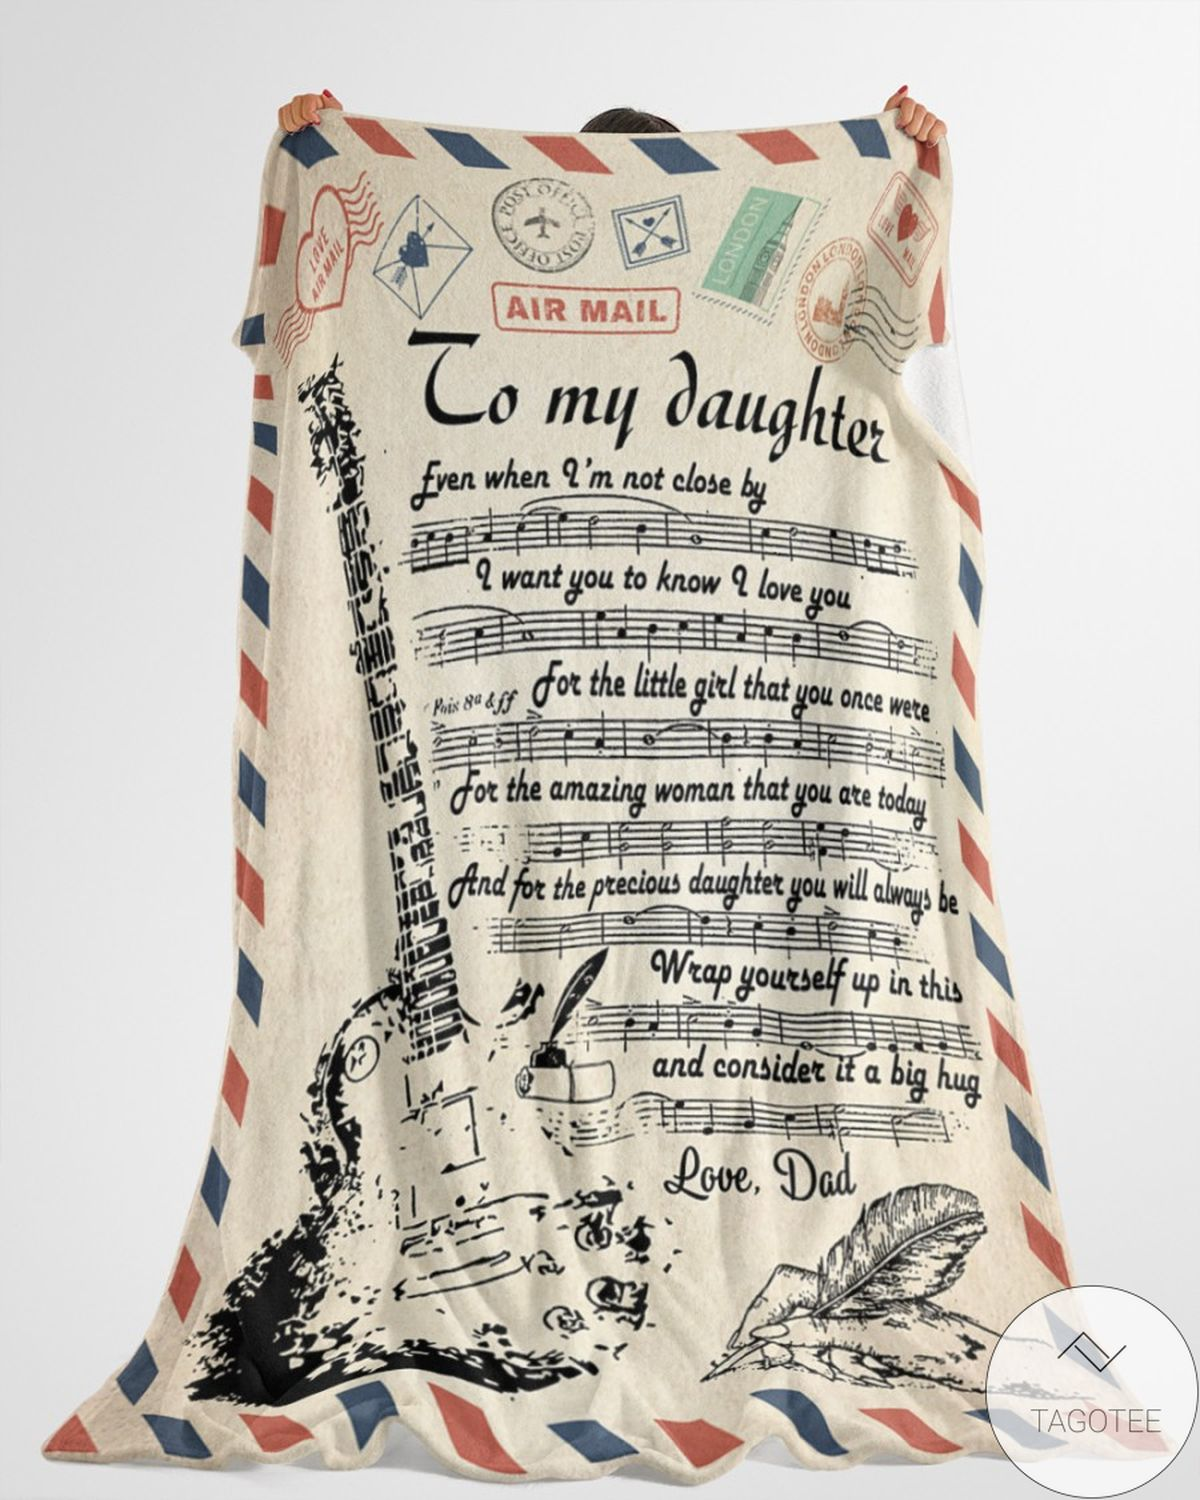 Hot Air Mail To My Daughter Guitar I Want You To Know I Love You Blanket